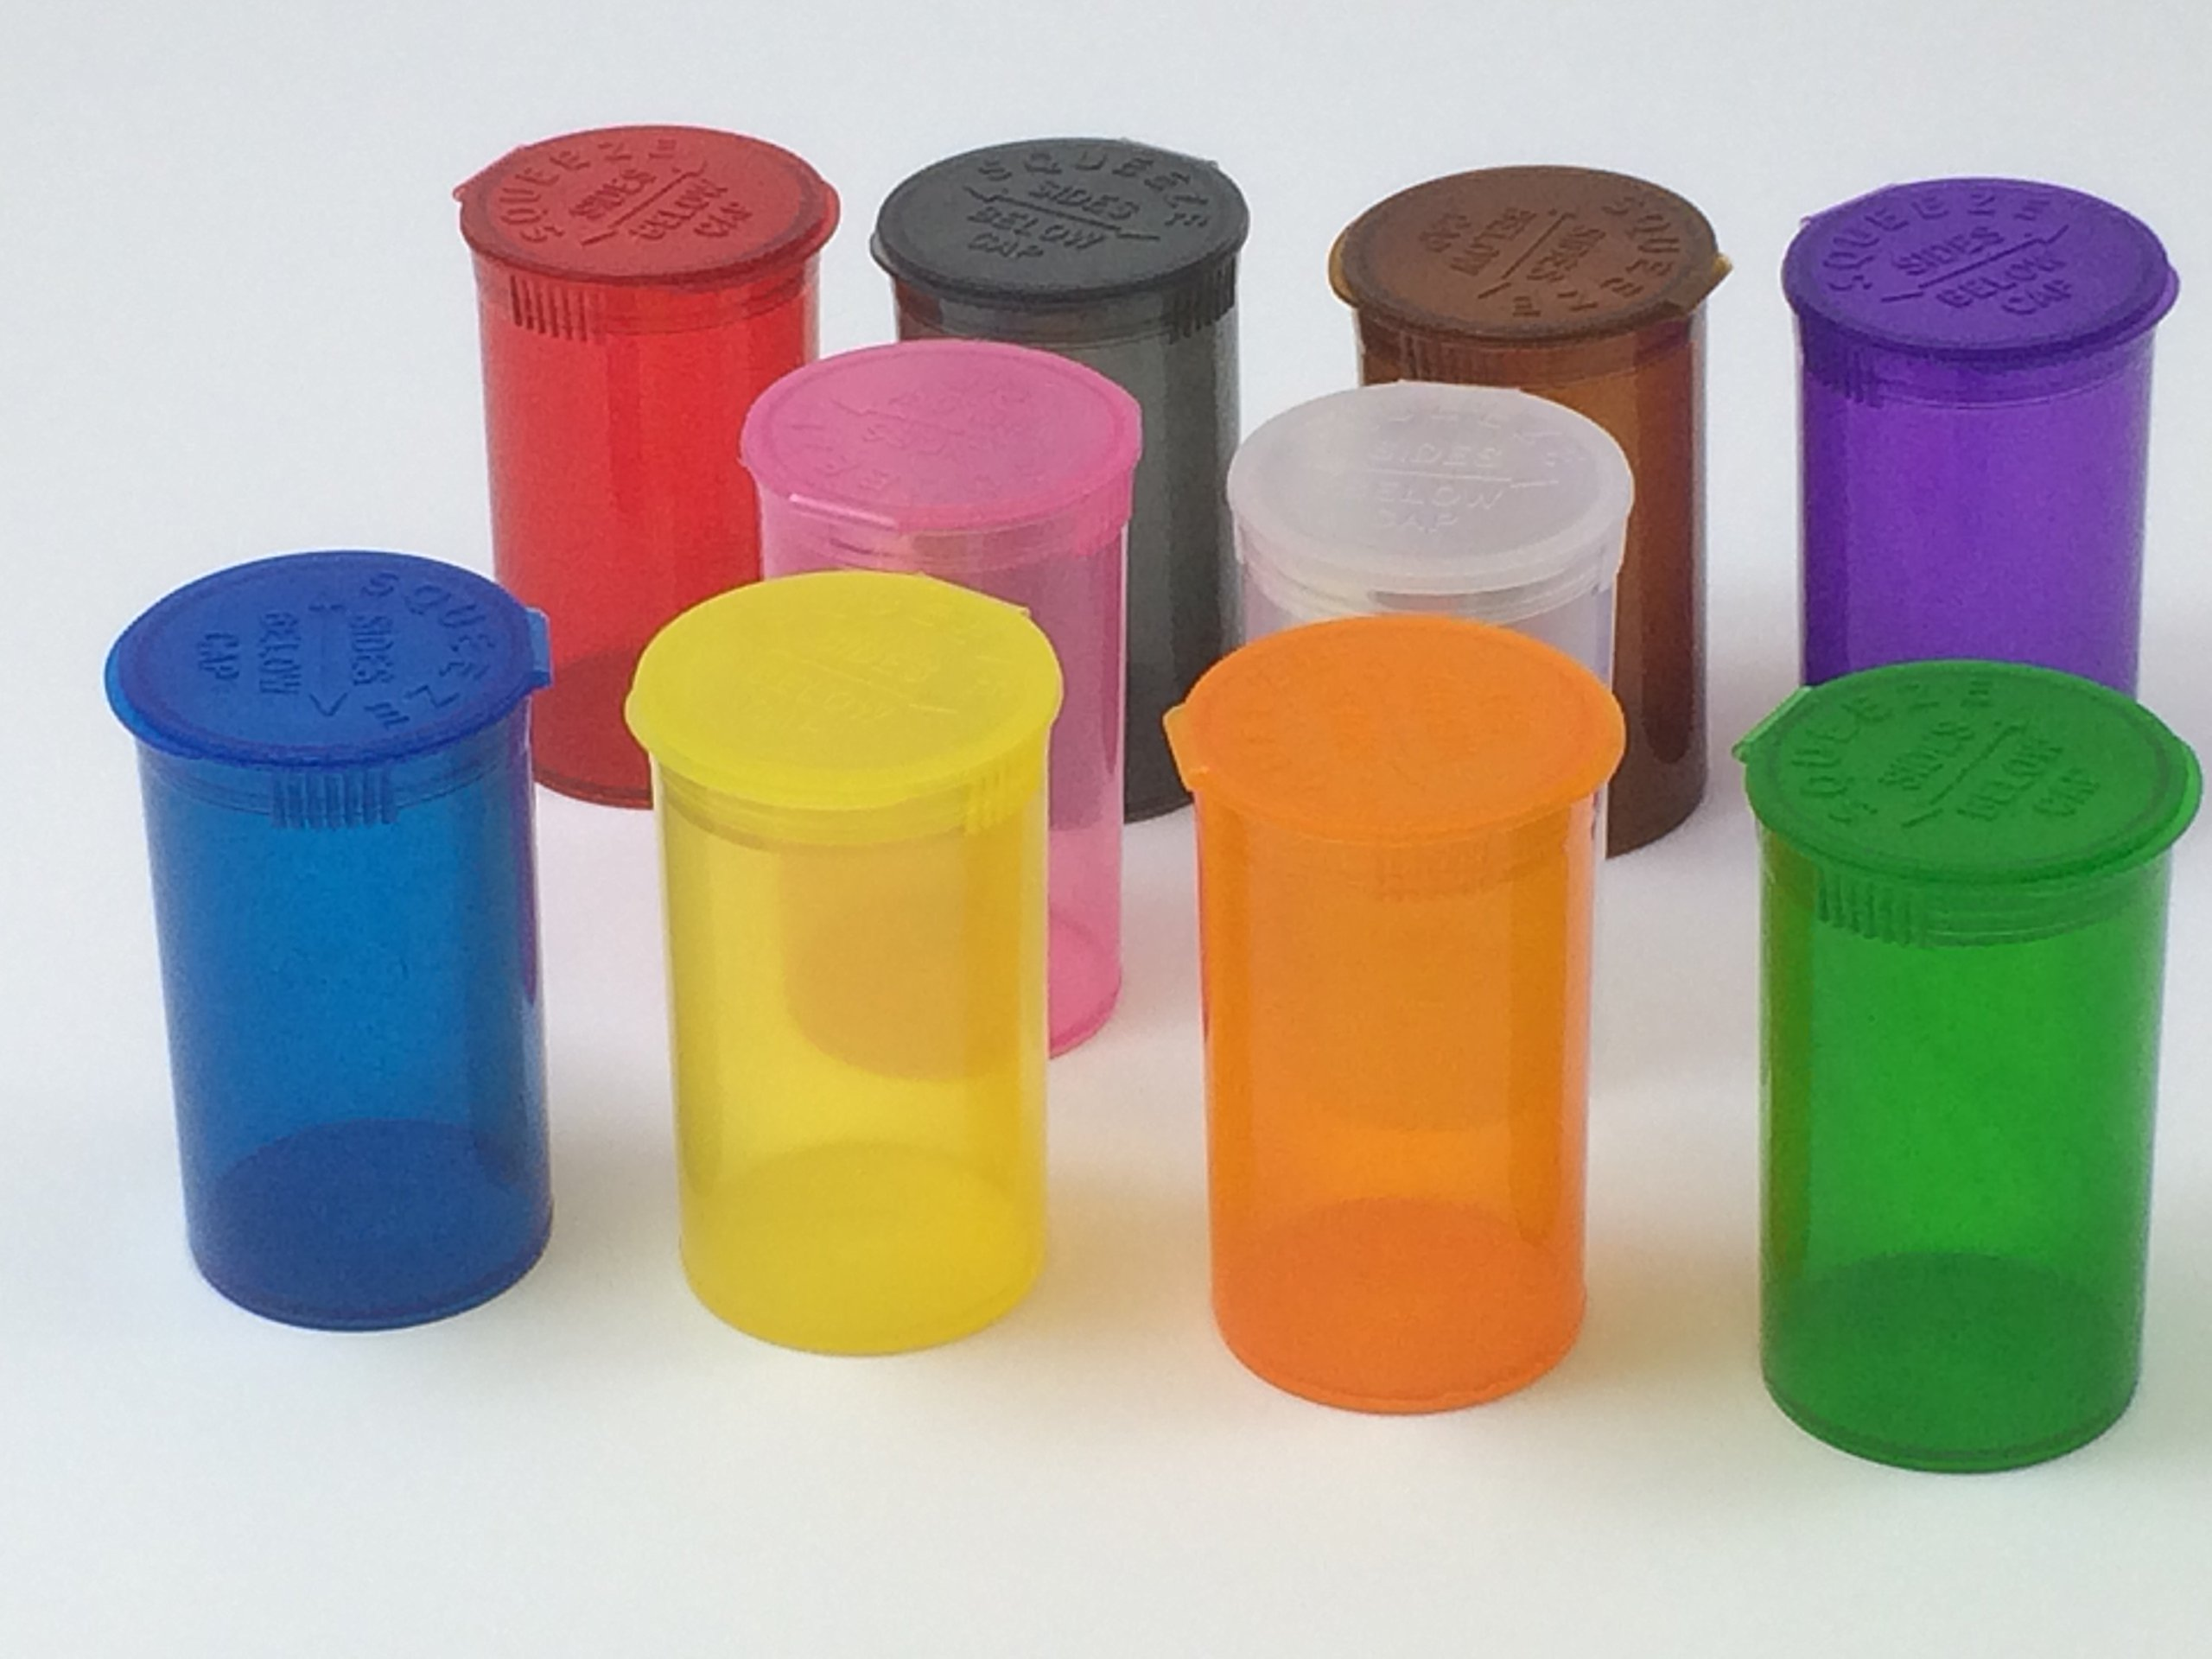 (15 Pack) 13 Dram Pill Bottle Squeezies Squeeze-top Pill Bottles Rx Prescription Crafts Coins Storage Medicine Containers 10 Assorted Colors You Pick (Mixed) by Cute Containers